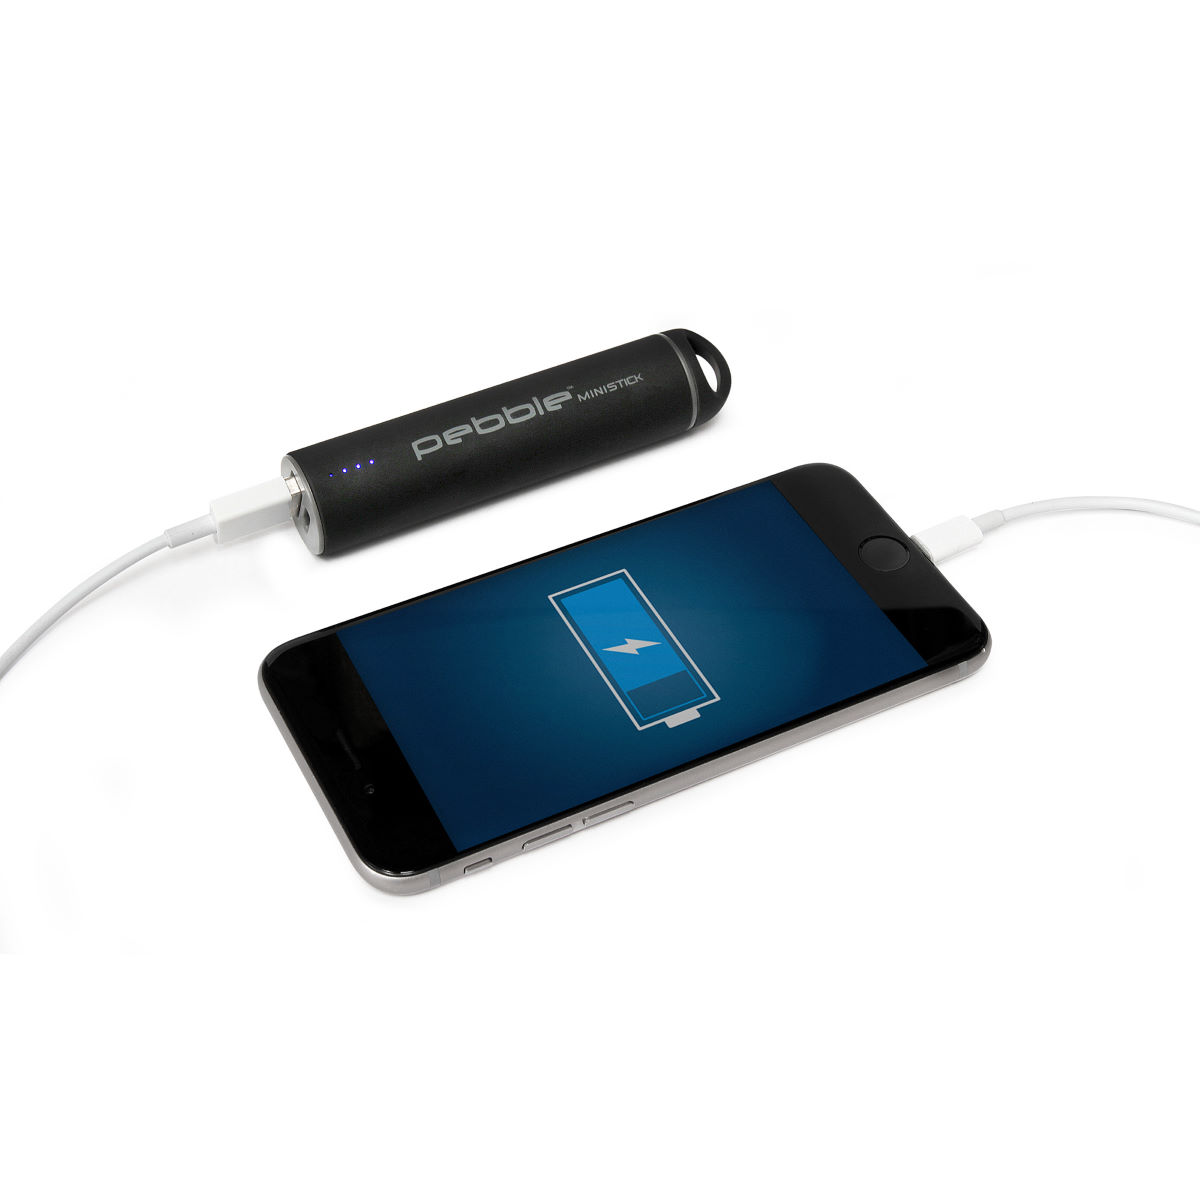 Product image of Veho Pebble Ministick 1800mAh Power Bank   Batteries